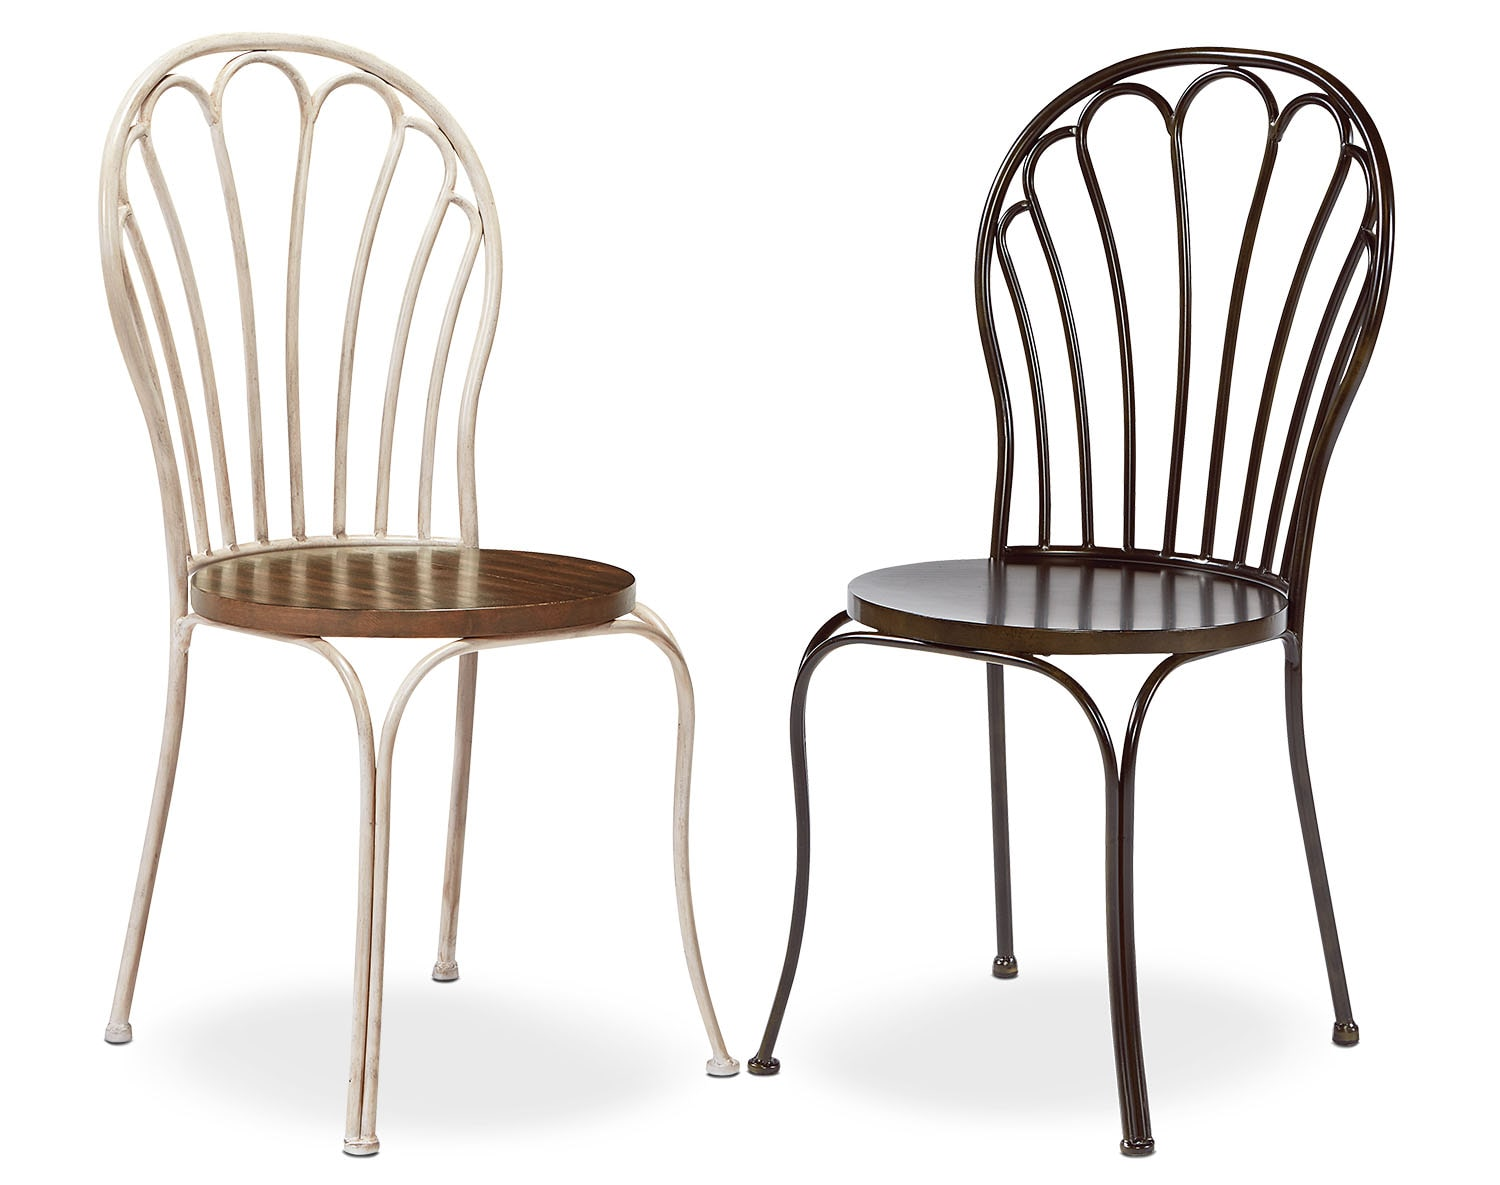 The Peacock Metal Chair Collection